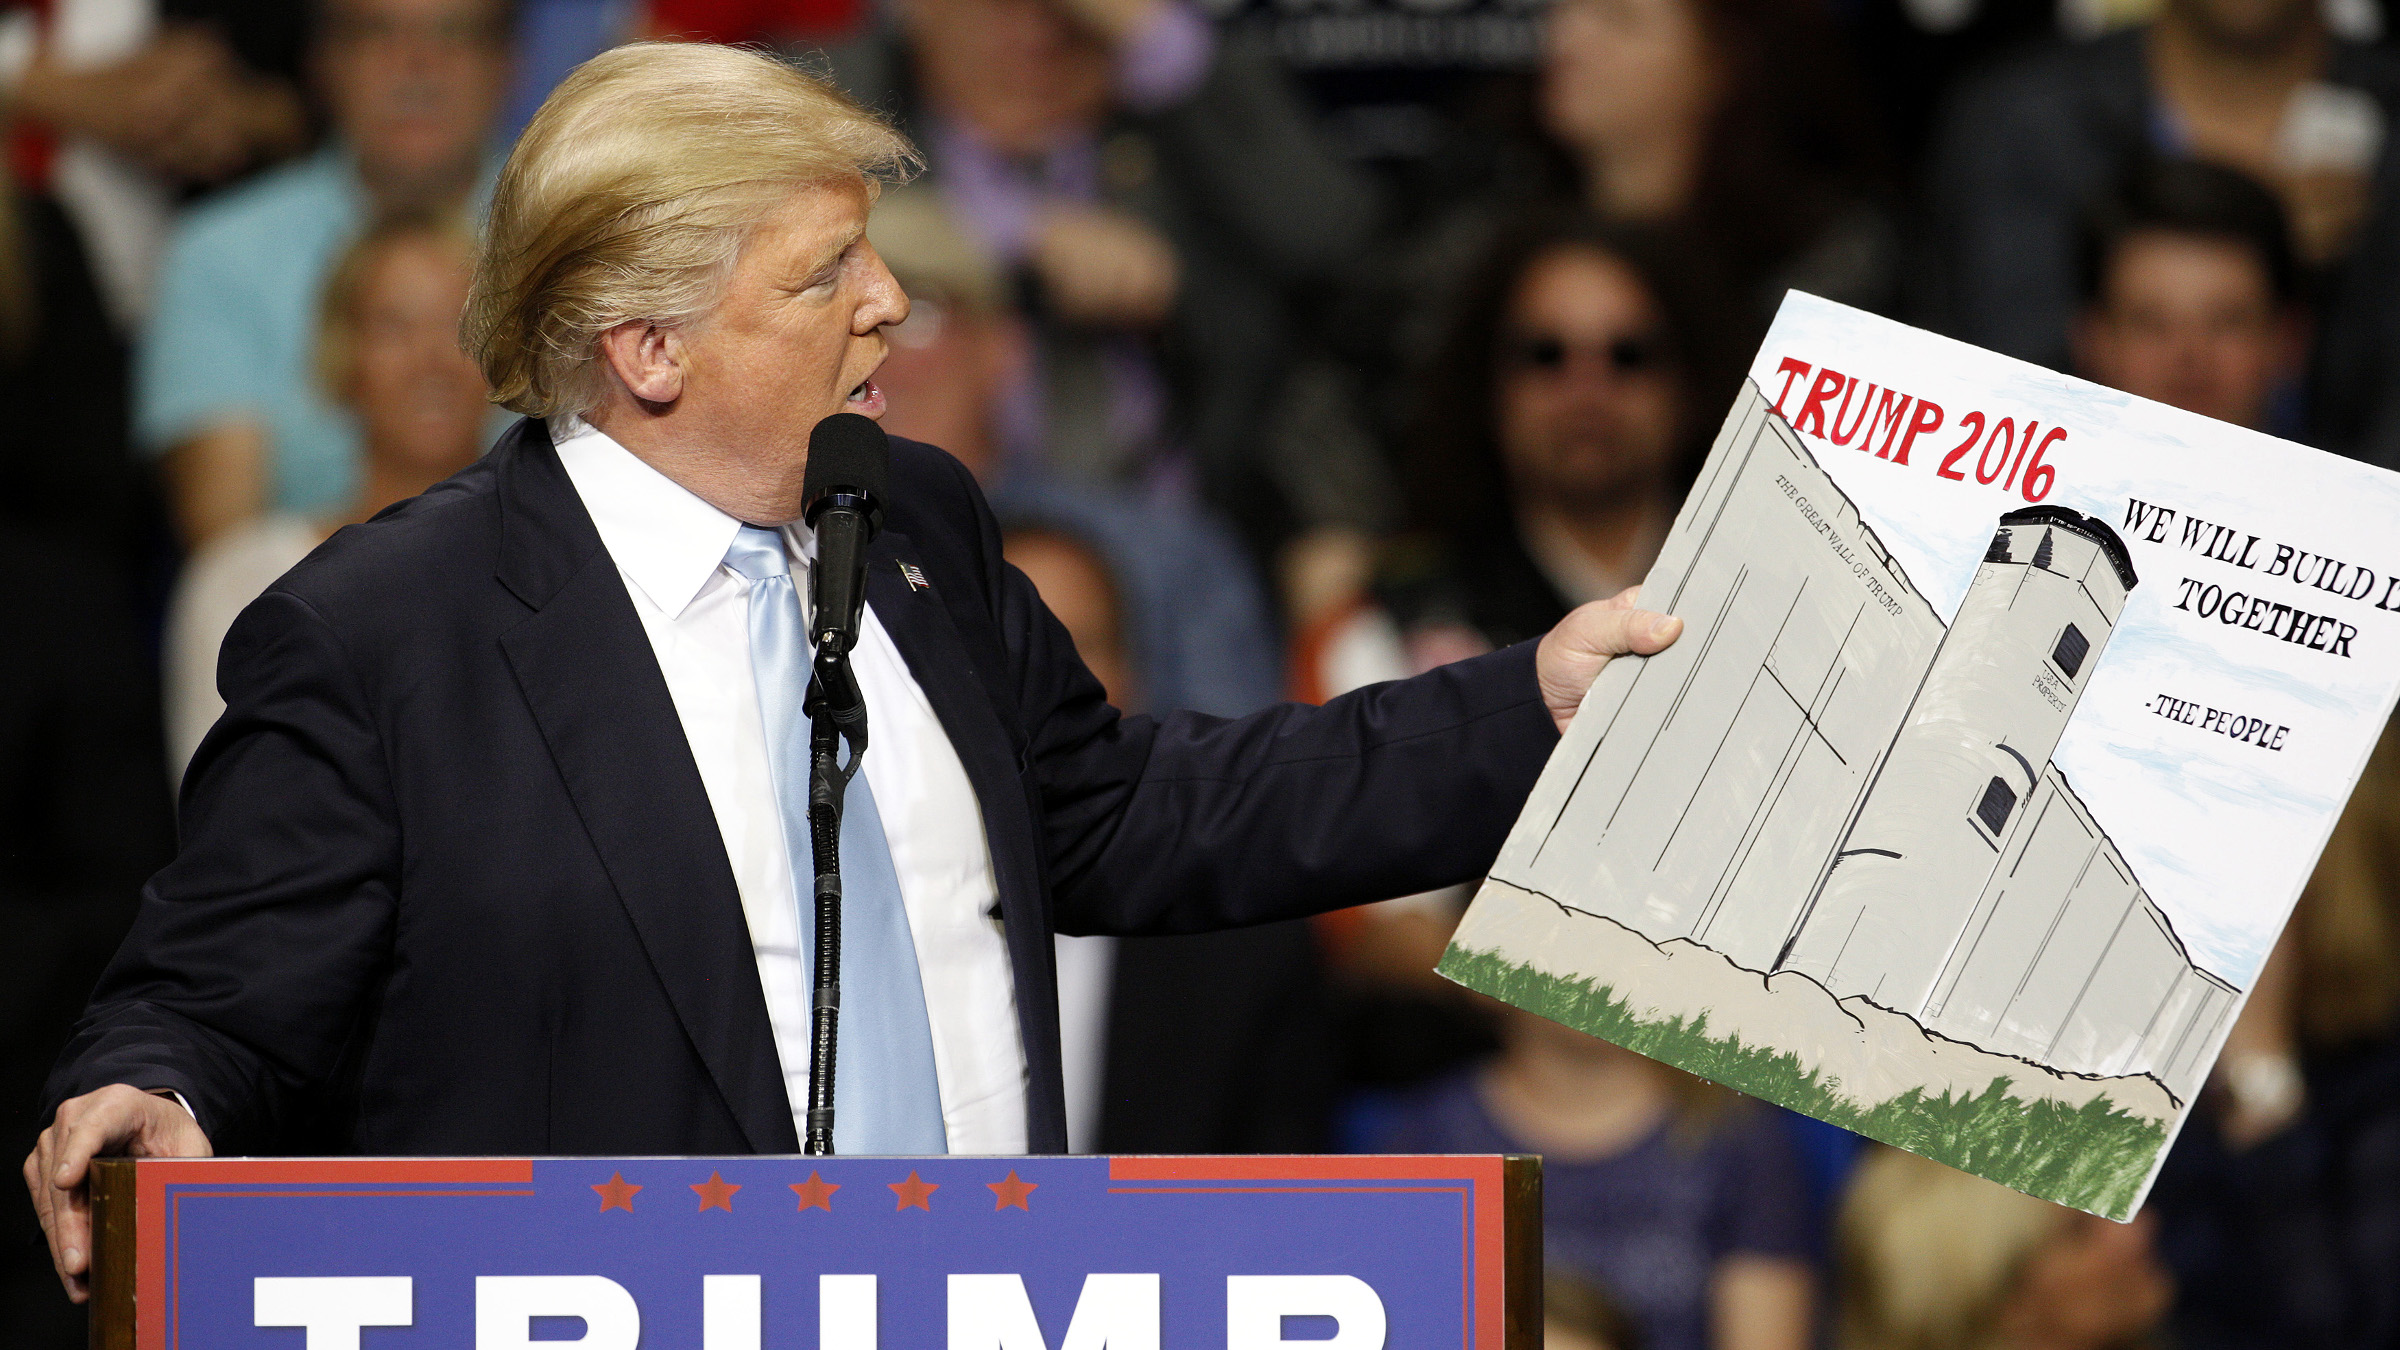 U.S. Republican presidential candidate Donald Trump holds a sign supporting his plan to build a wall between the United States and Mexico that he borrowed from a member of the audience at his campaign rally in Fayetteville, North Carolina March 9, 2016. Trump was interrupted repeatedly by demonstrators during his rally.